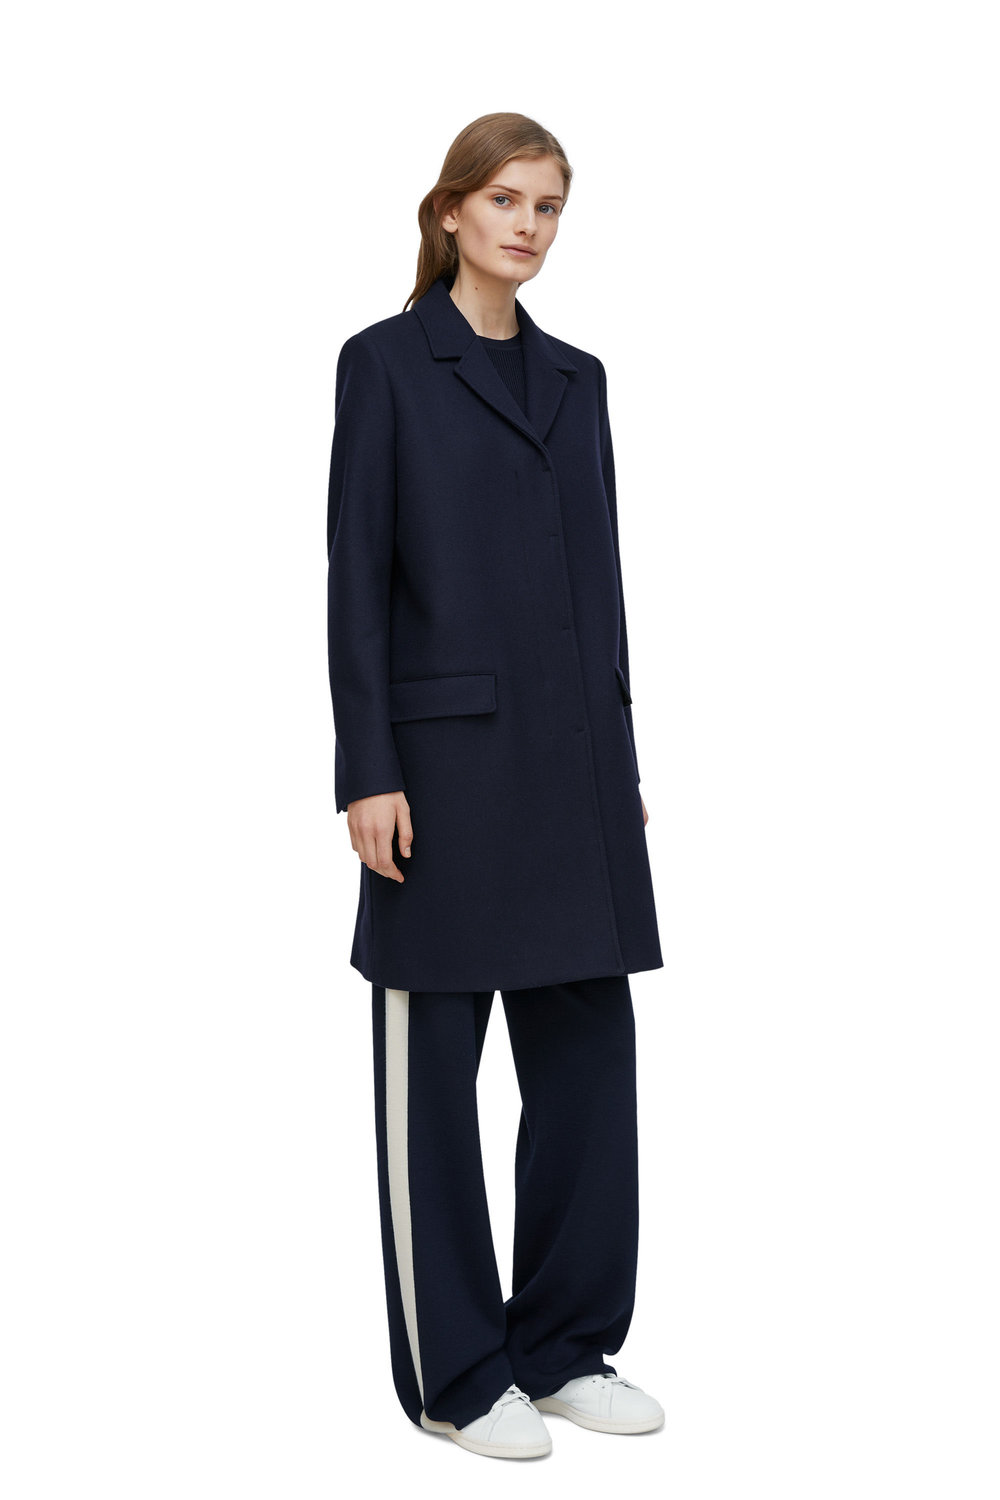 Heavy Wool Coat, £190